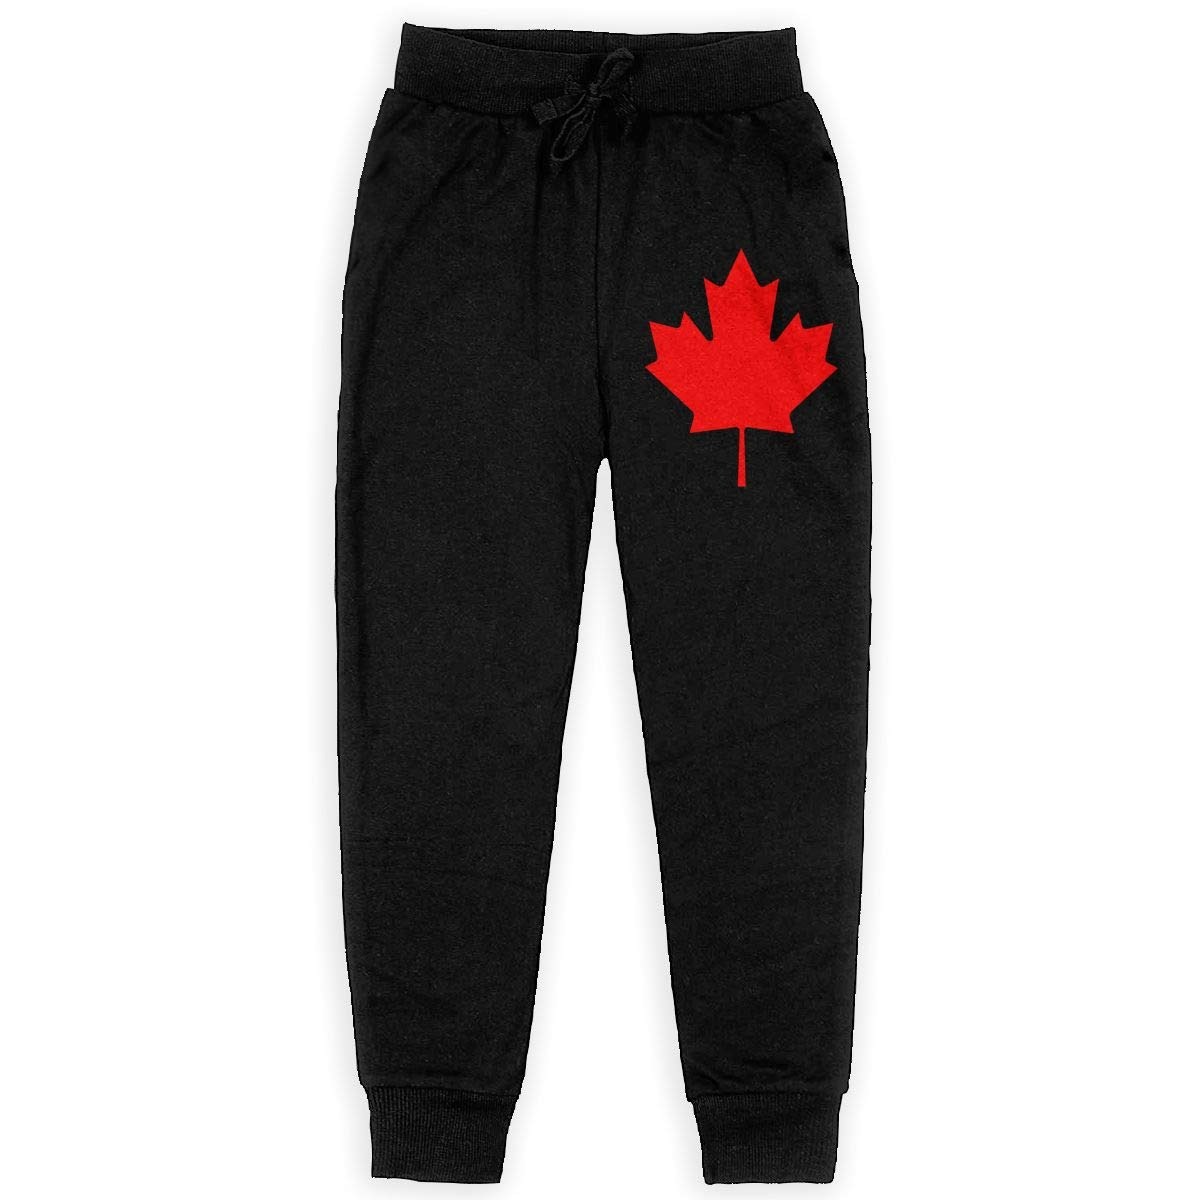 Maple Leaf Boys Athletic Smart Fleece Pant Youth Soft and Cozy Sweatpants